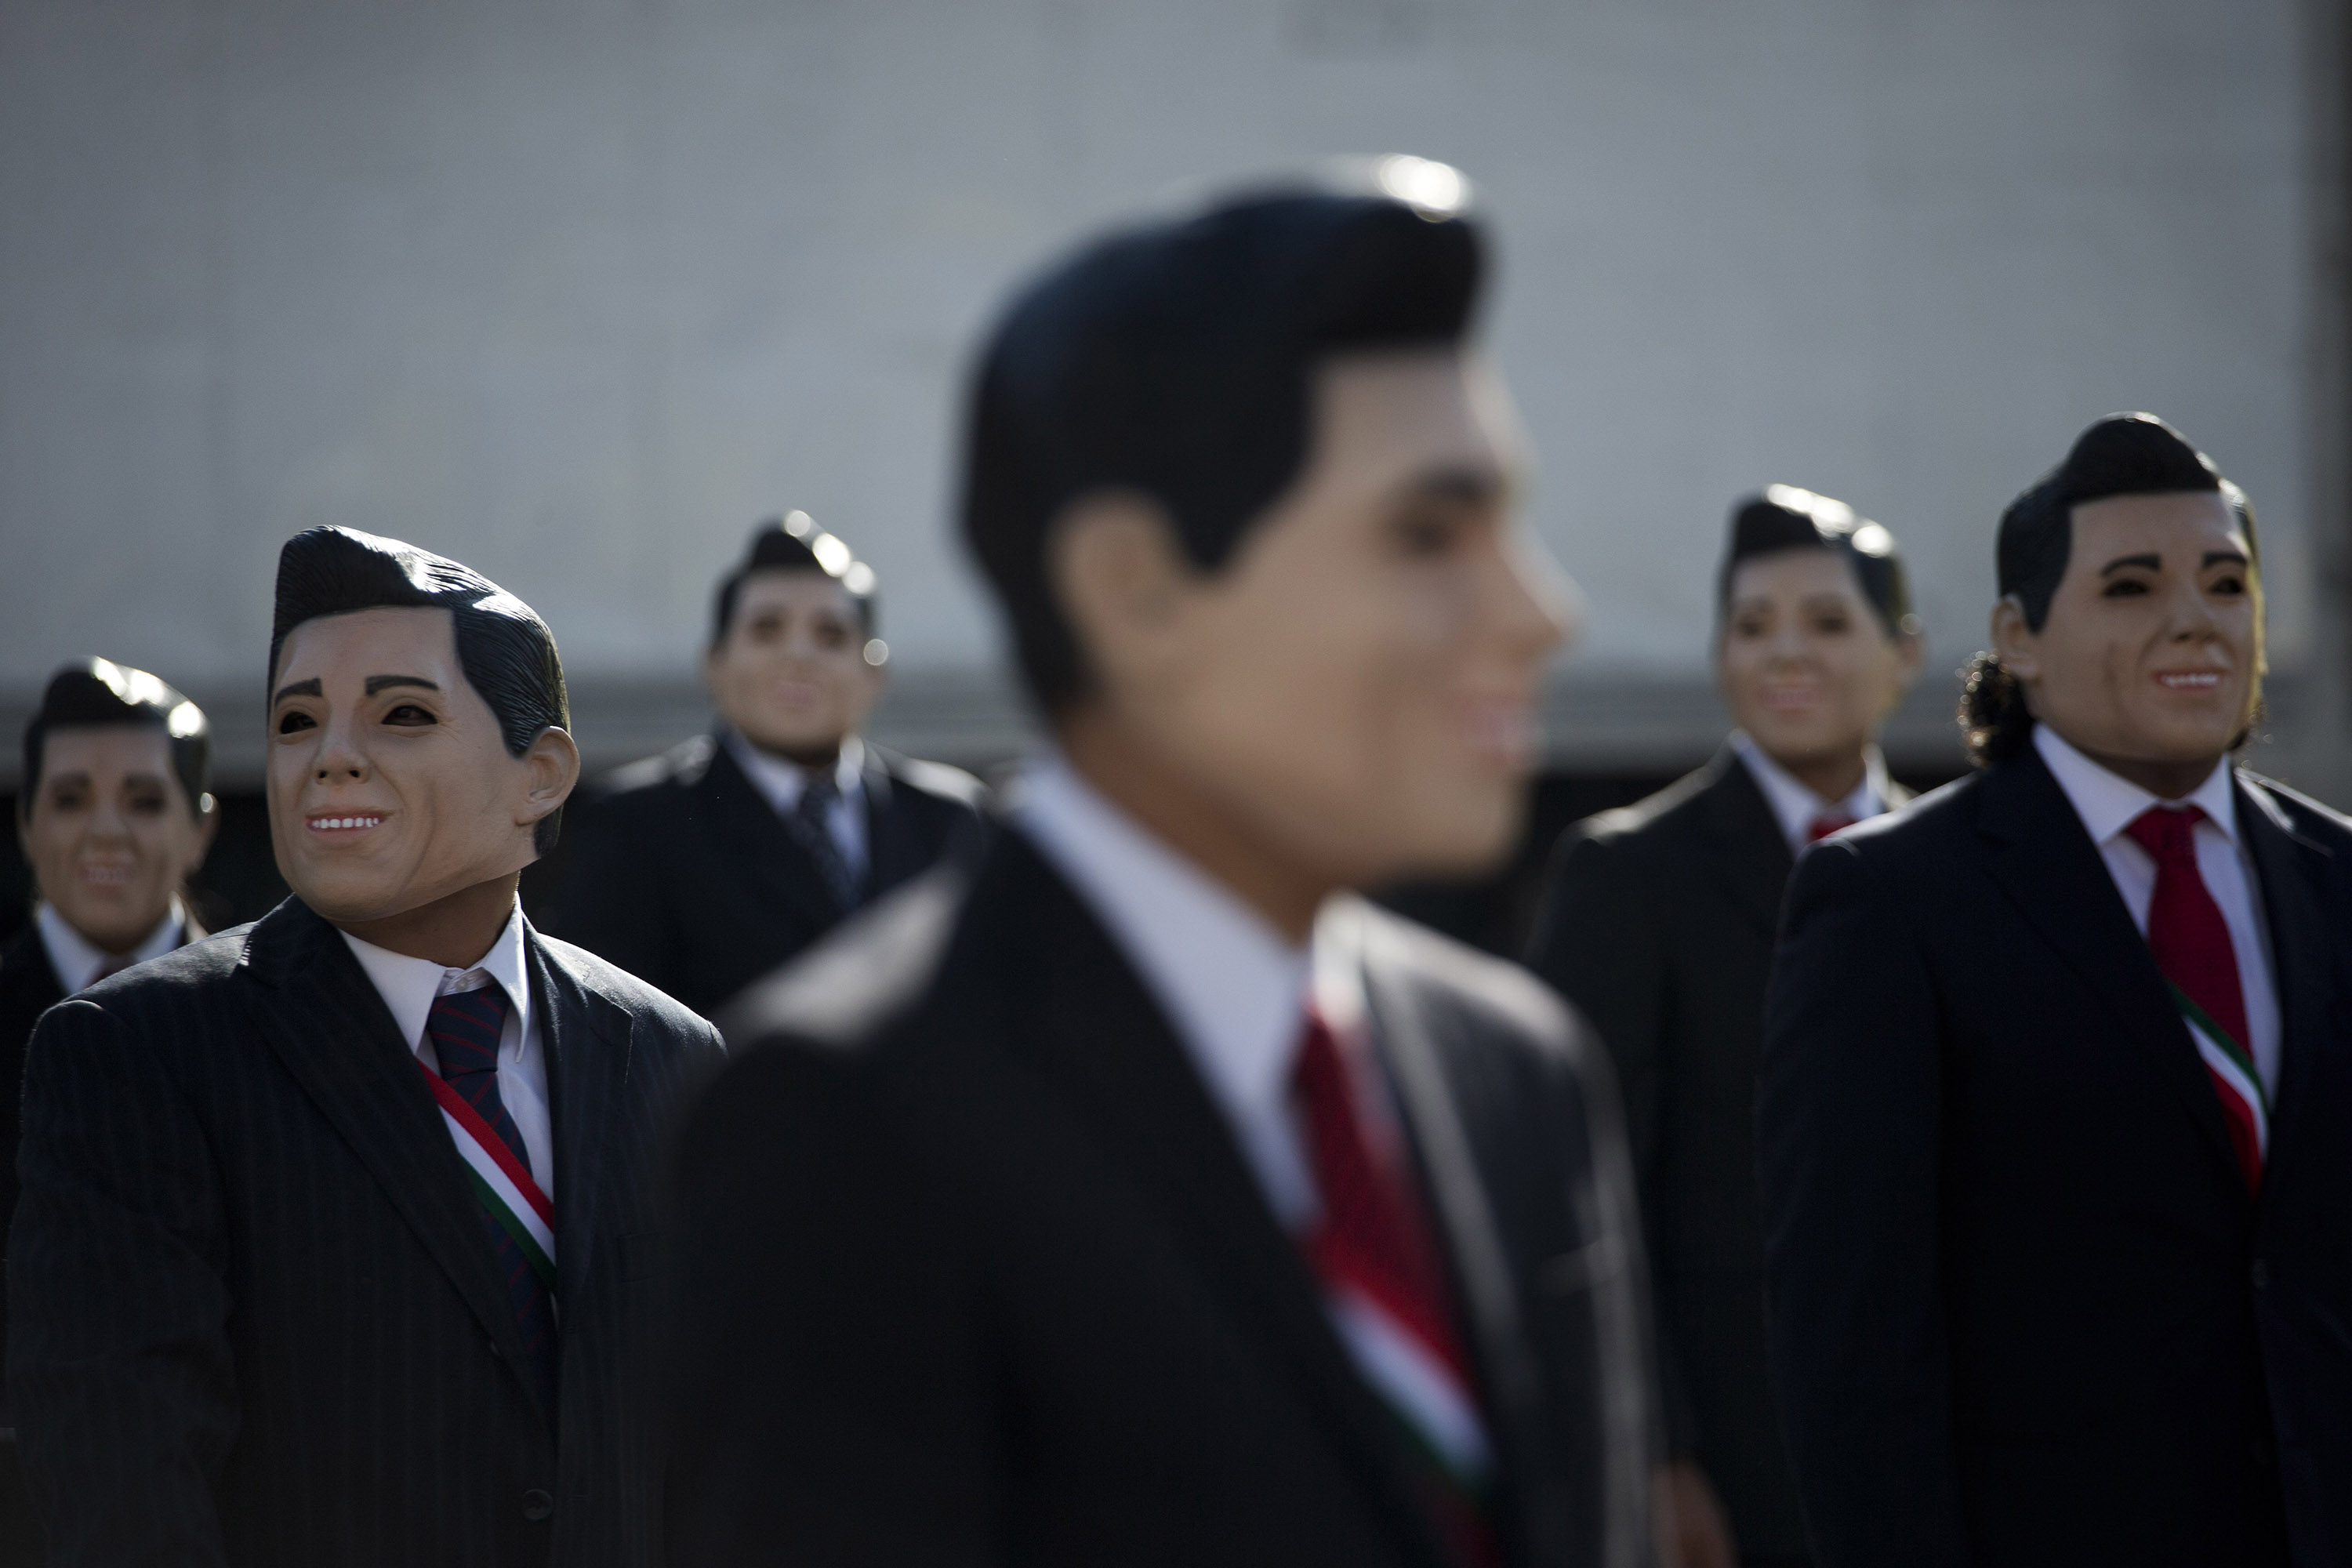 Greenpeace protestors wear masks of Mexican President Enrique Pena Nieto as they demonstrate in front of the National Palace in Mexico City, on Oct. 23, 2014.